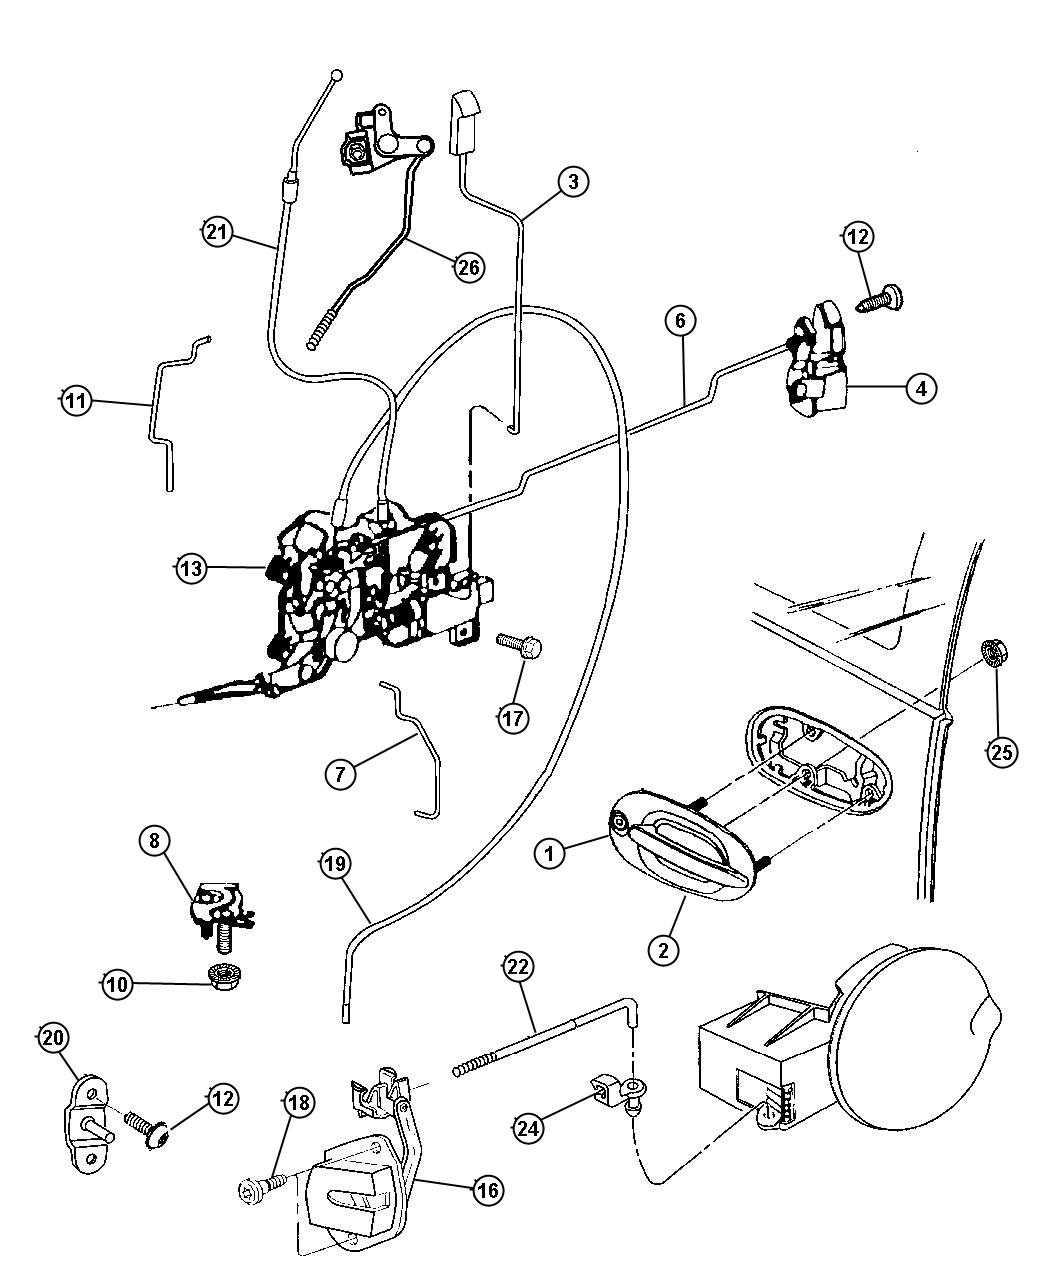 hight resolution of 1998 plymouth grand voyager problems imageresizertool com 1994 plymouth voyager engine diagram dodge nitro engine diagram